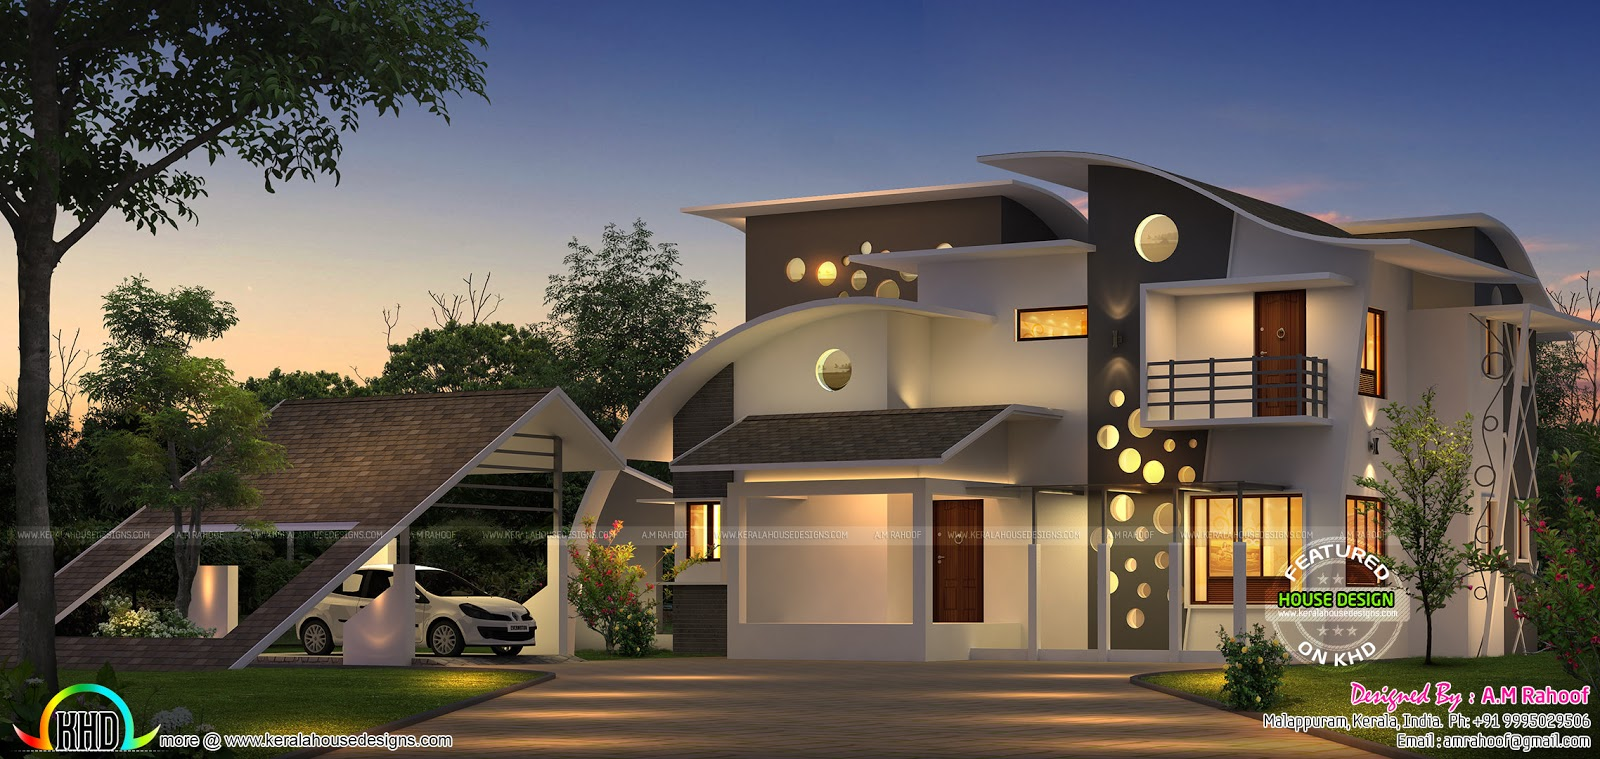 Creative House Designs Of February 2016 Kerala Home Design And Floor Plans